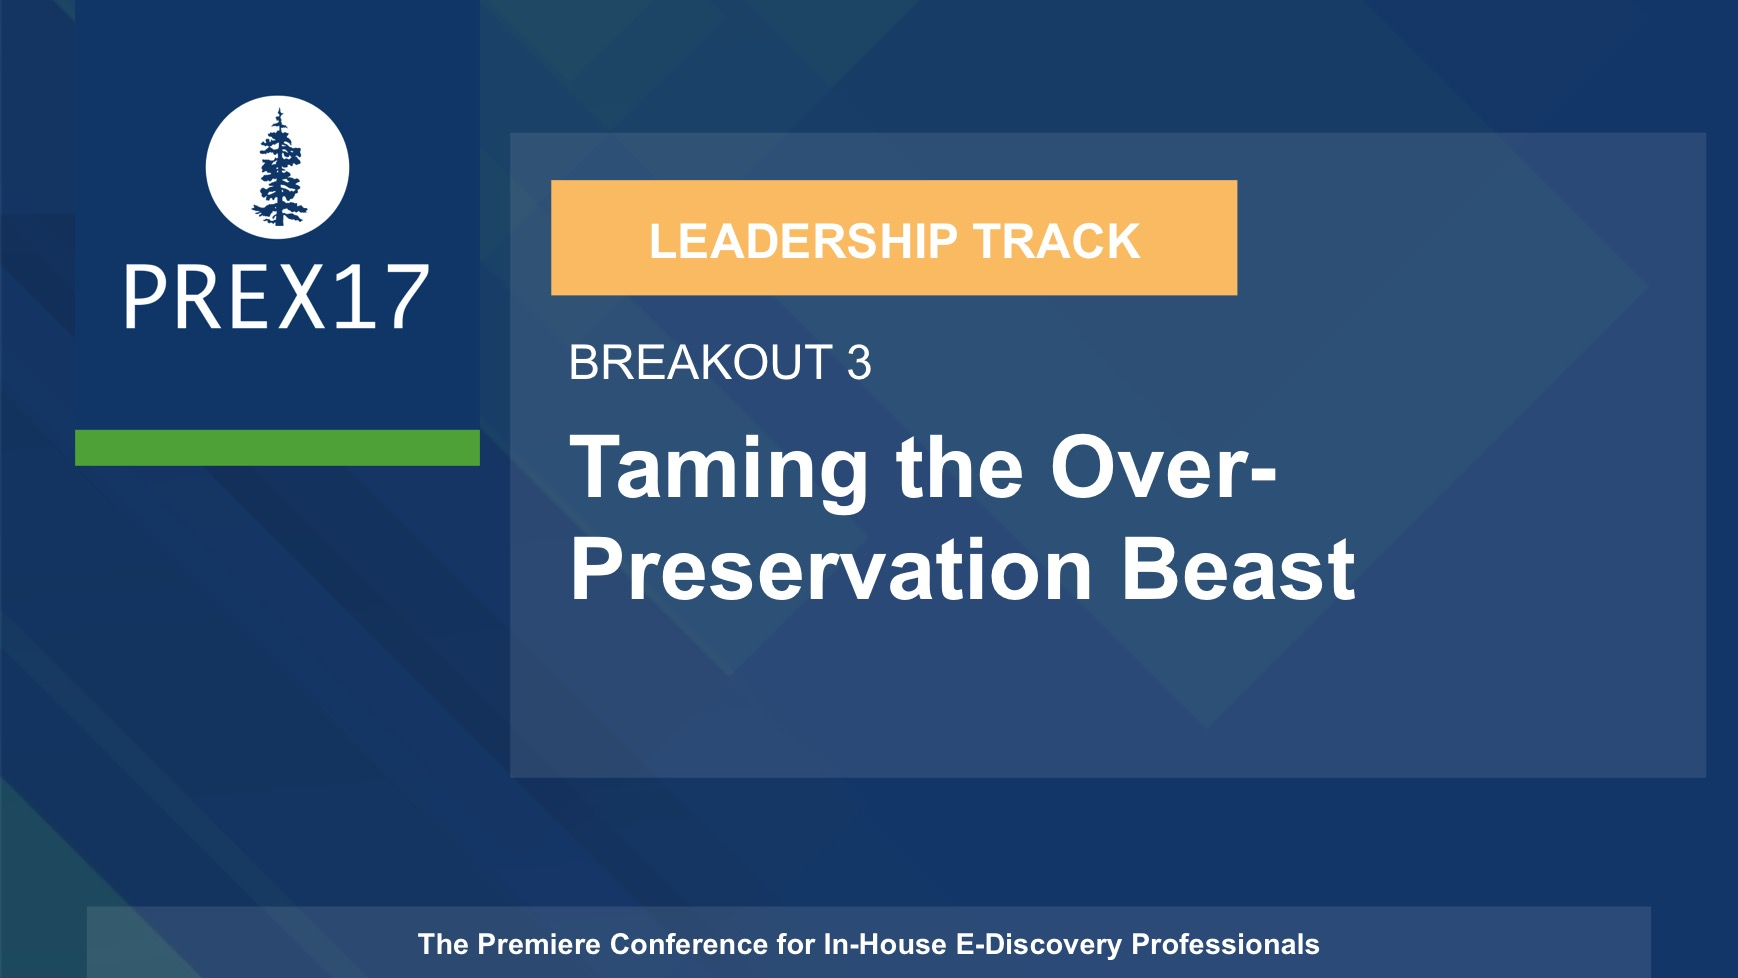 (Breakout 3 - Leadership) Taming the Over-Preservation Beast